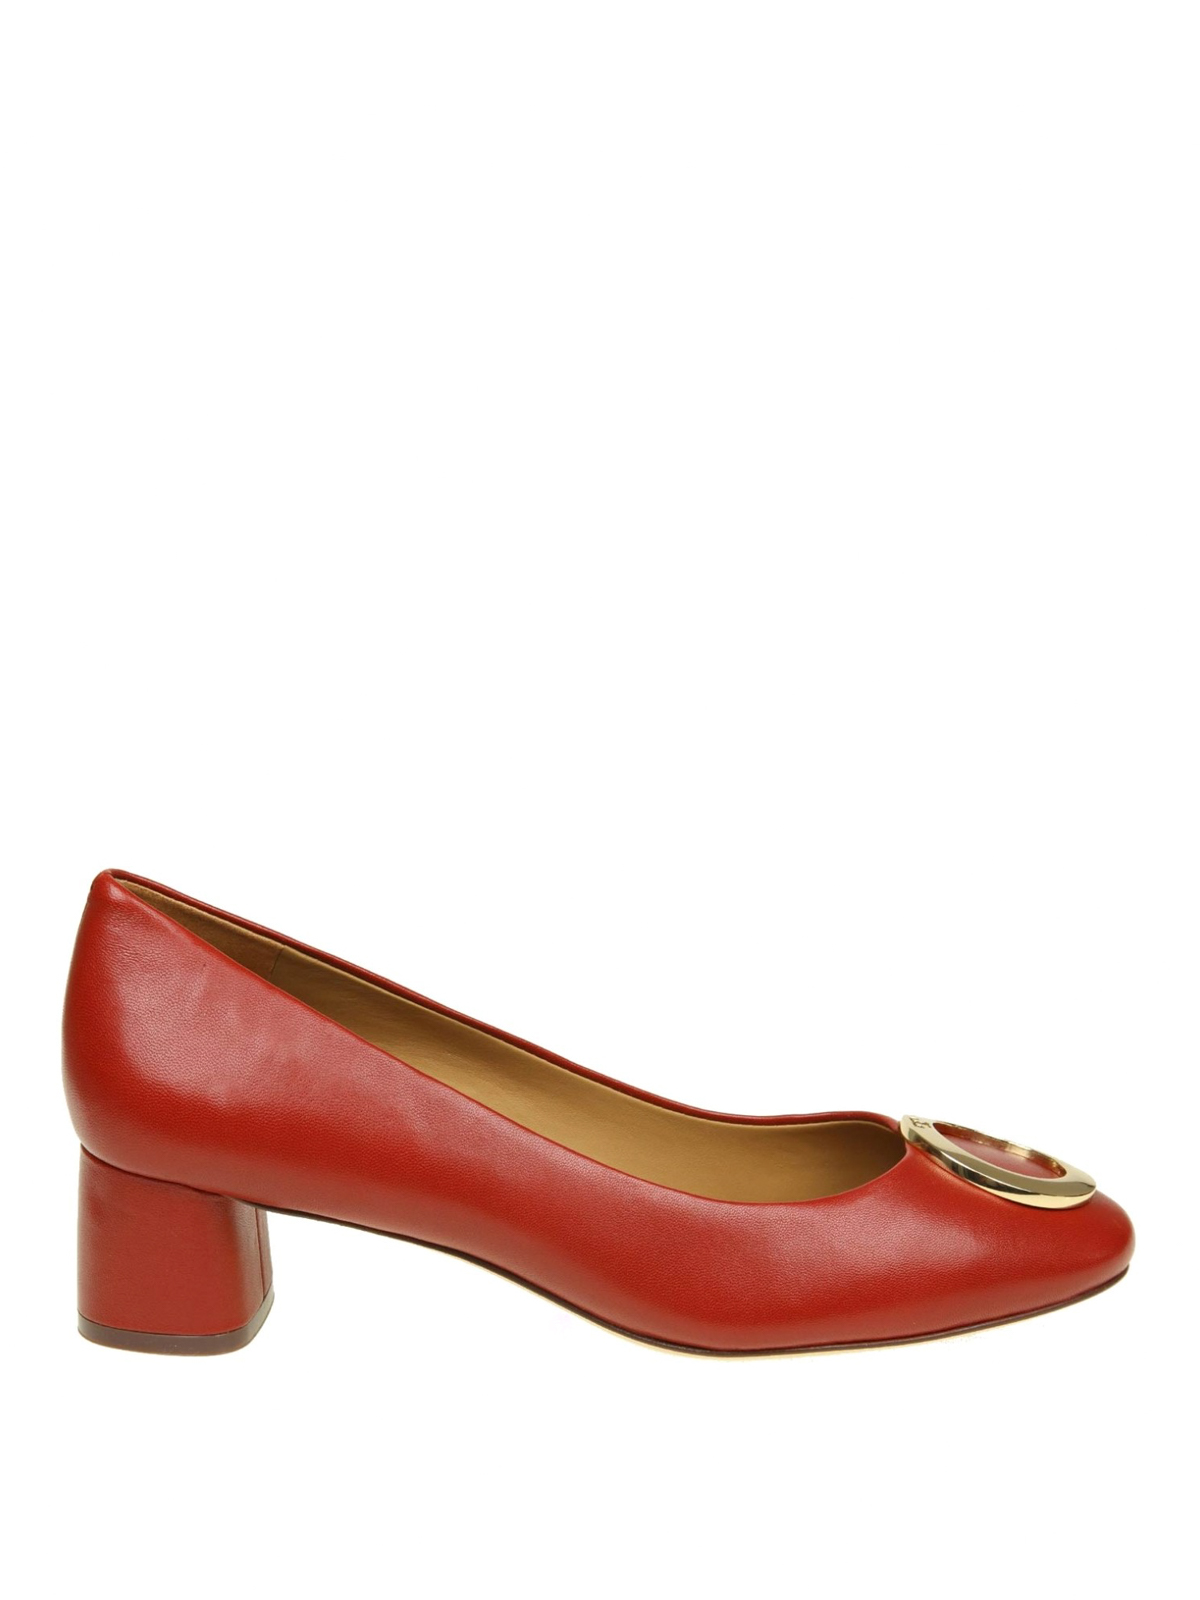 efcae0a7b246 TORY BURCH  court shoes - Caterina metal logo detailed leather pumps